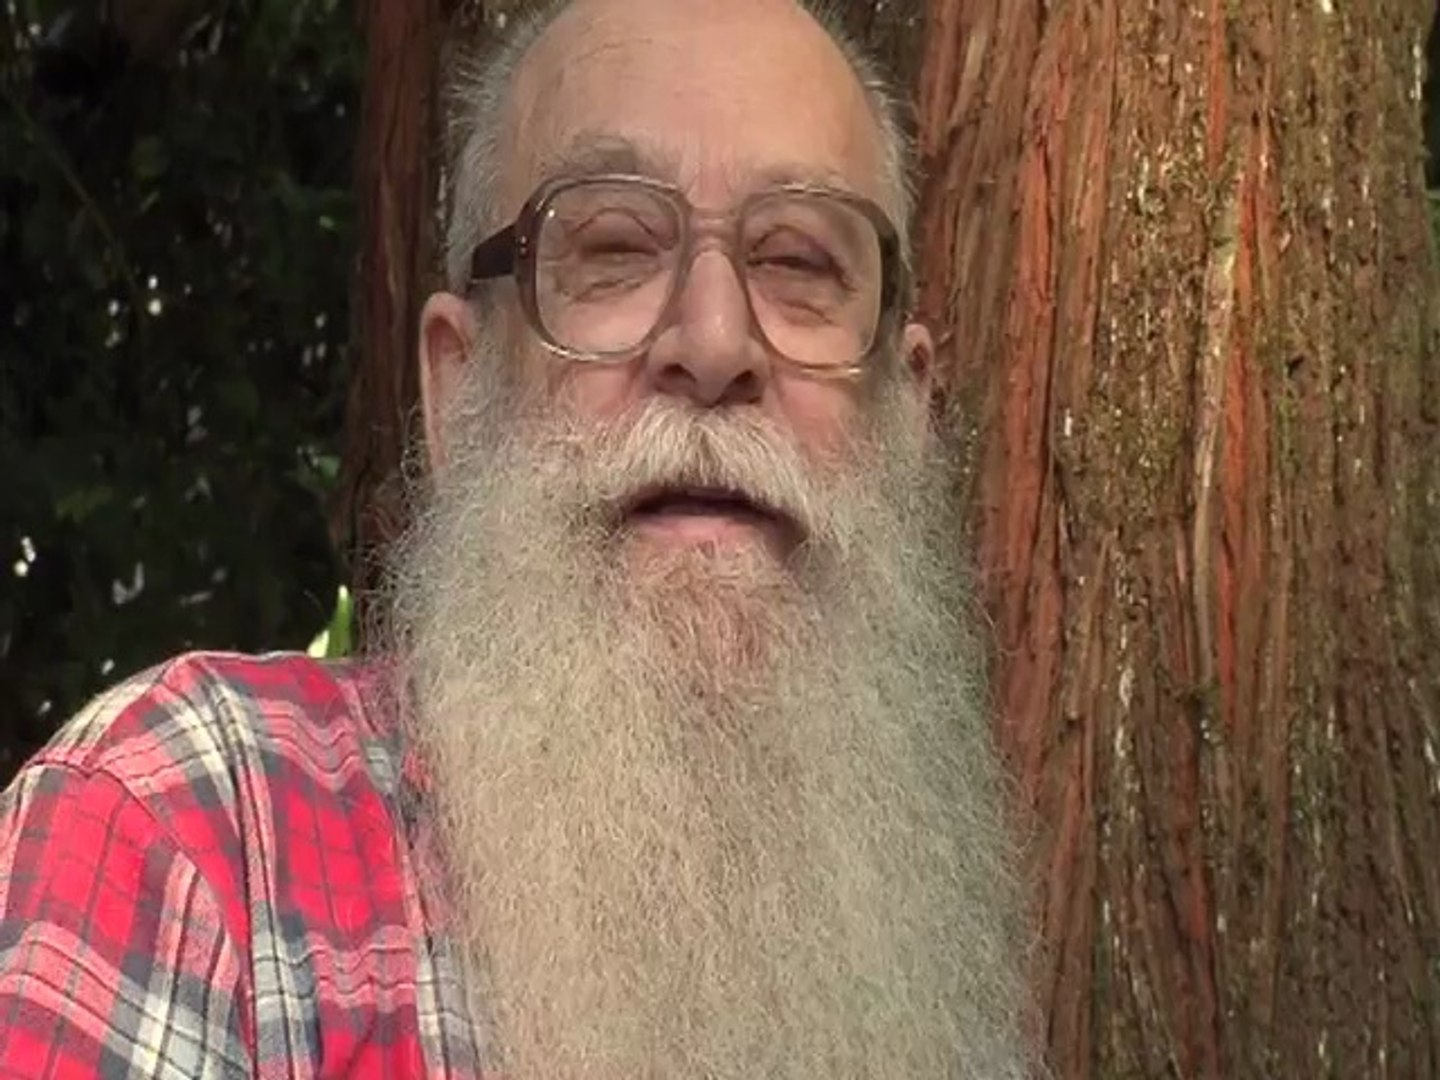 The Billy Meier Story: Ufos And Prophecies From Outer Space (2009)